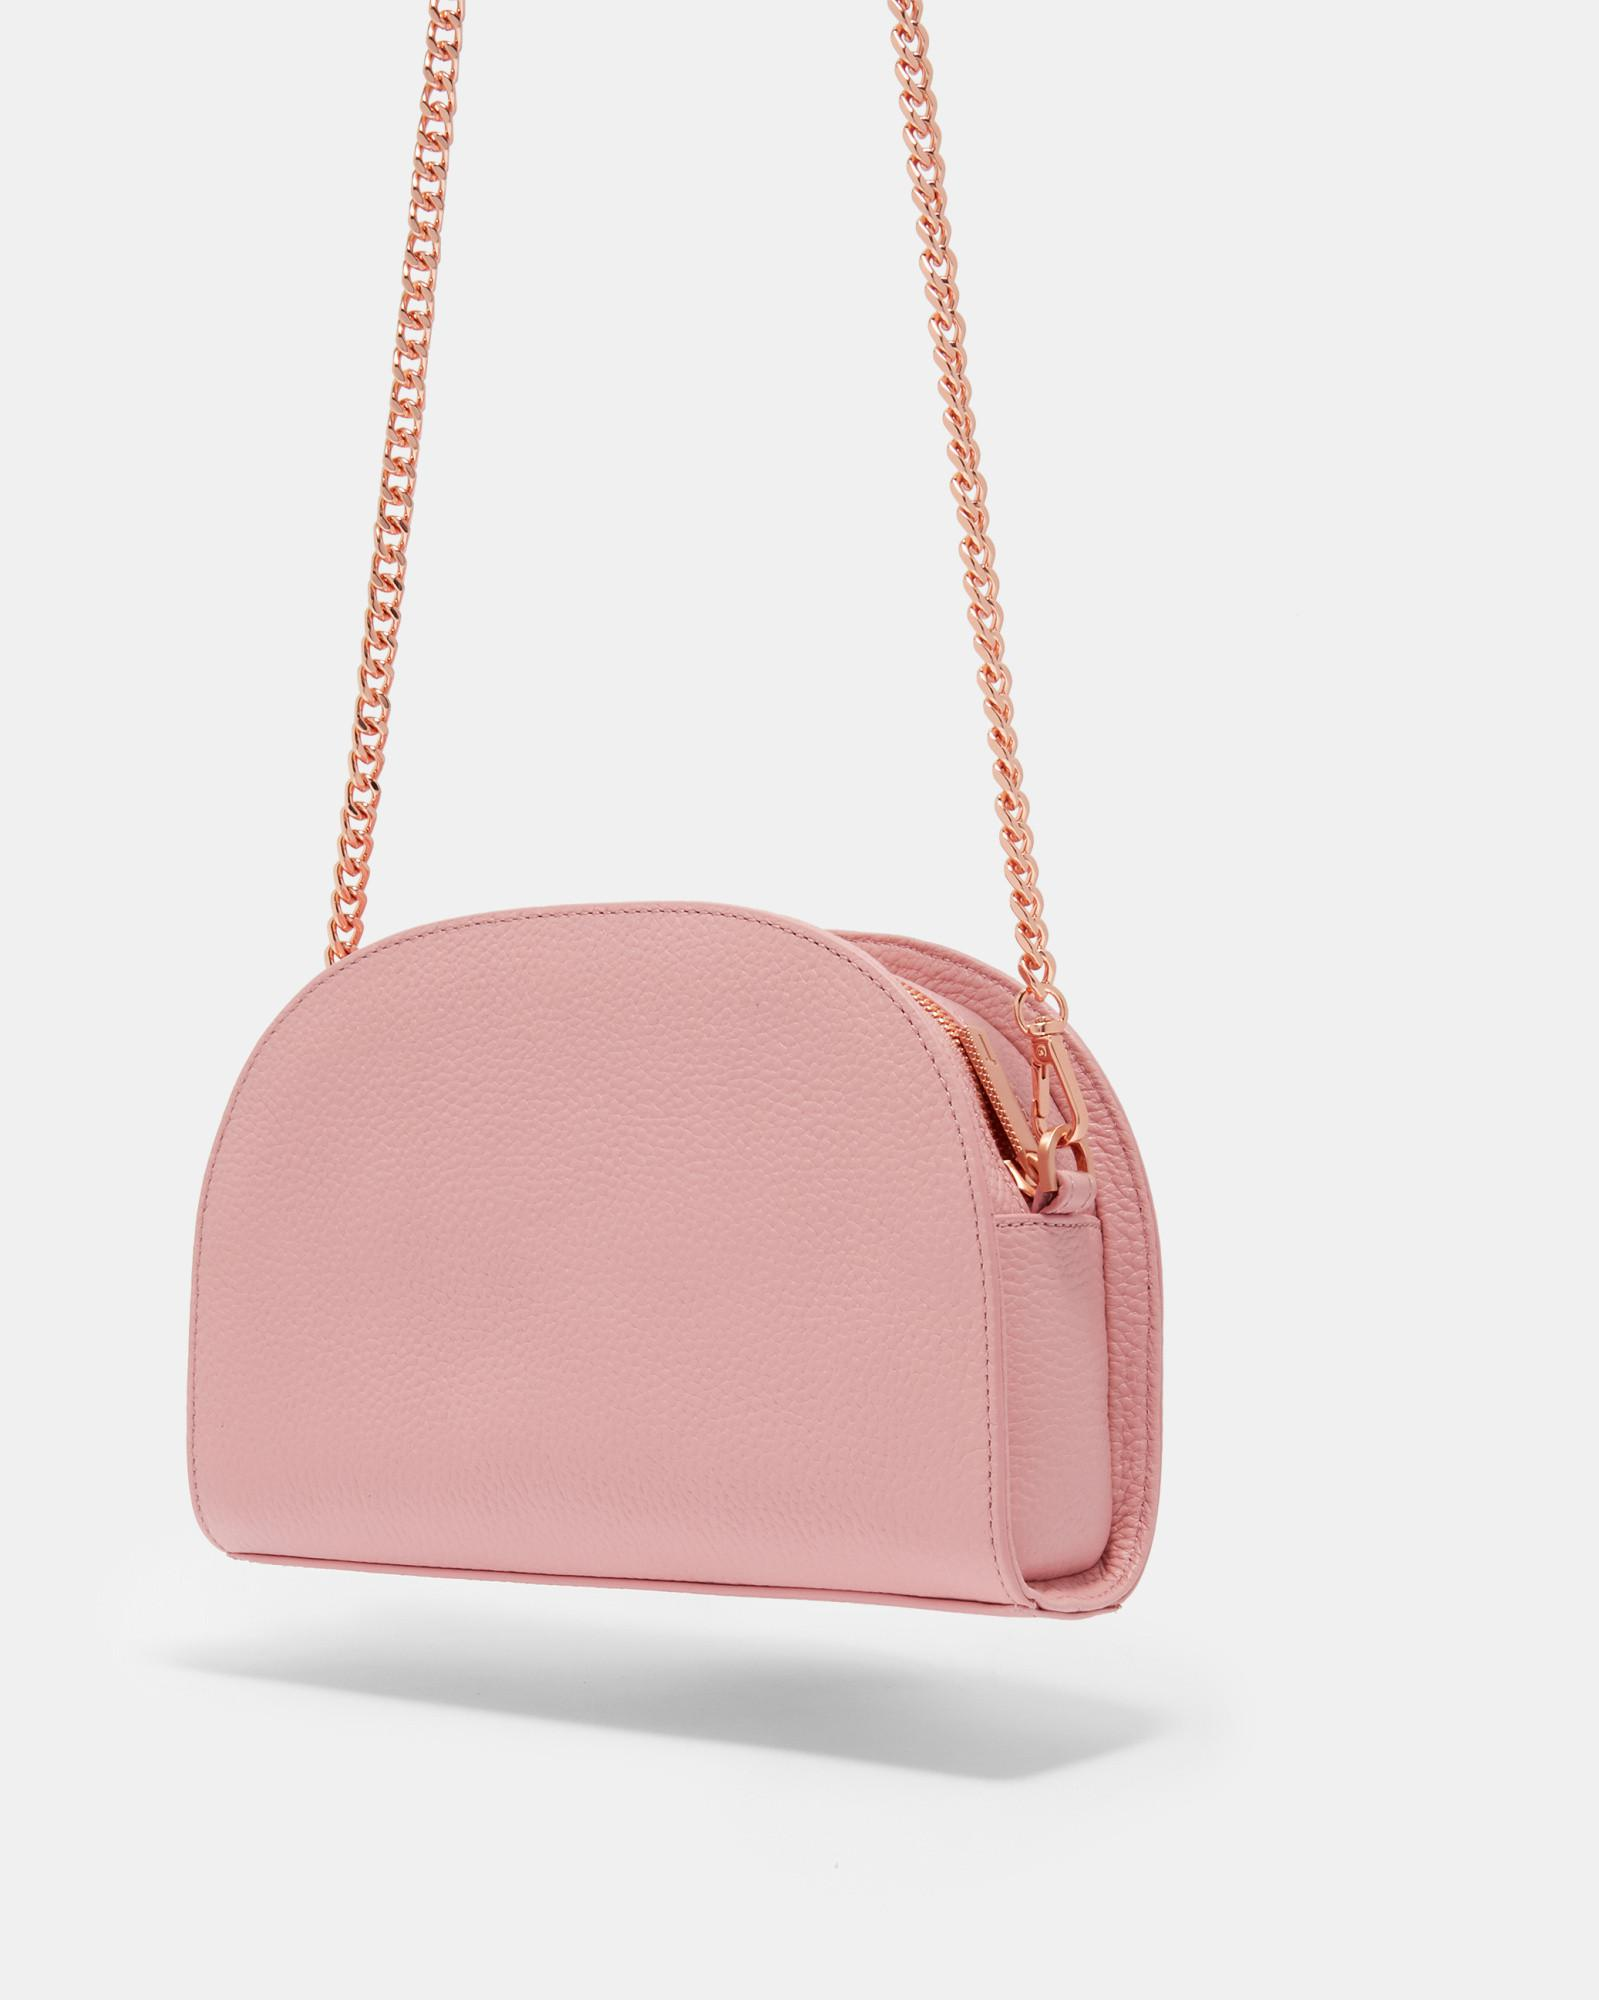 24c0f2c297 Lyst - Ted Baker Leather Pom-pom Cross Body Bag in Pink